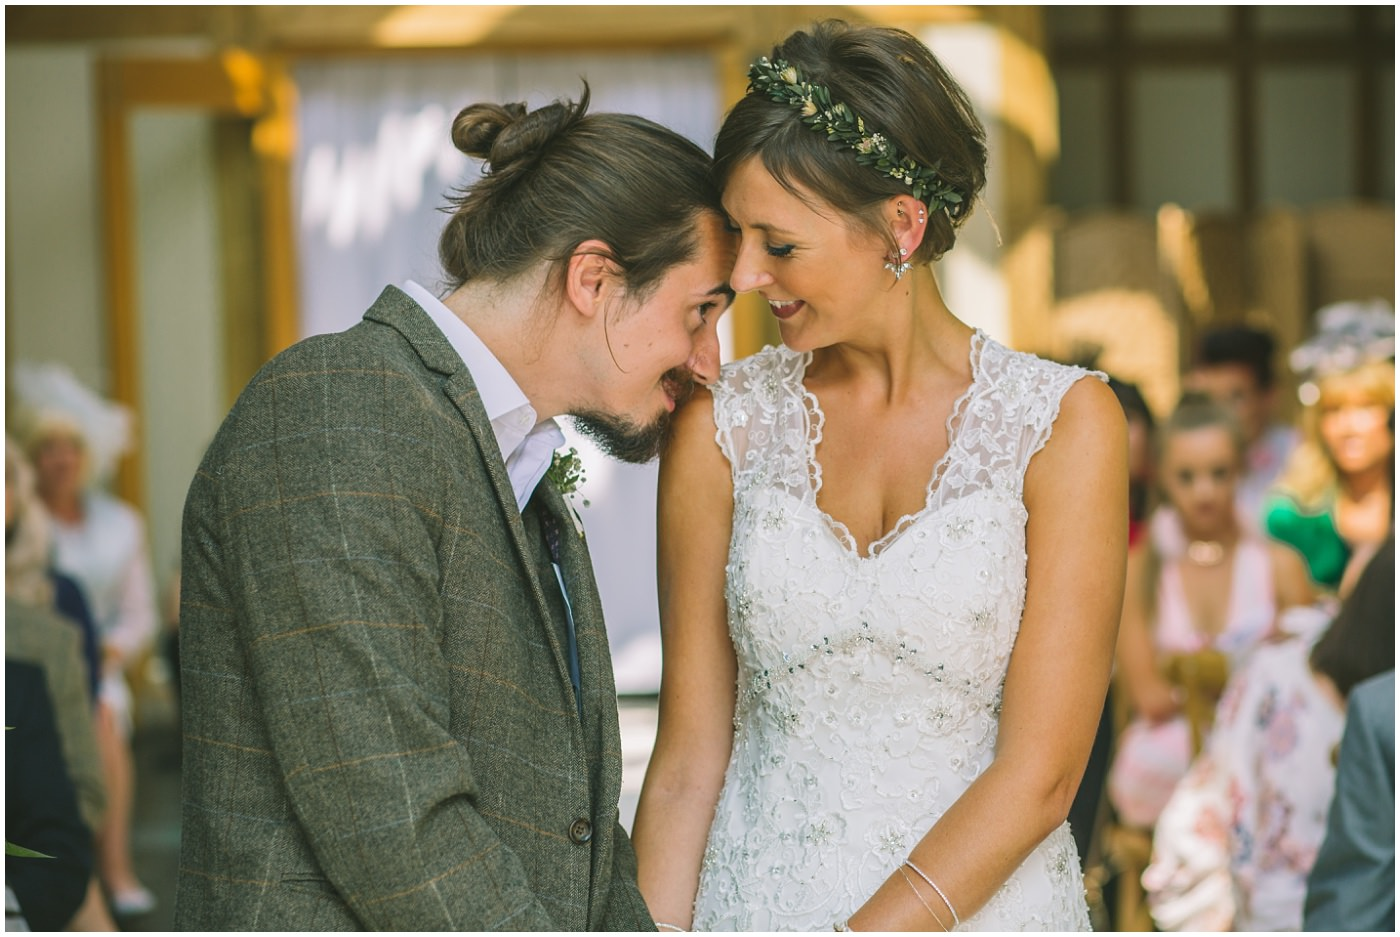 bbride and groom share a moment mid ceremony at The oak Tree of Peover